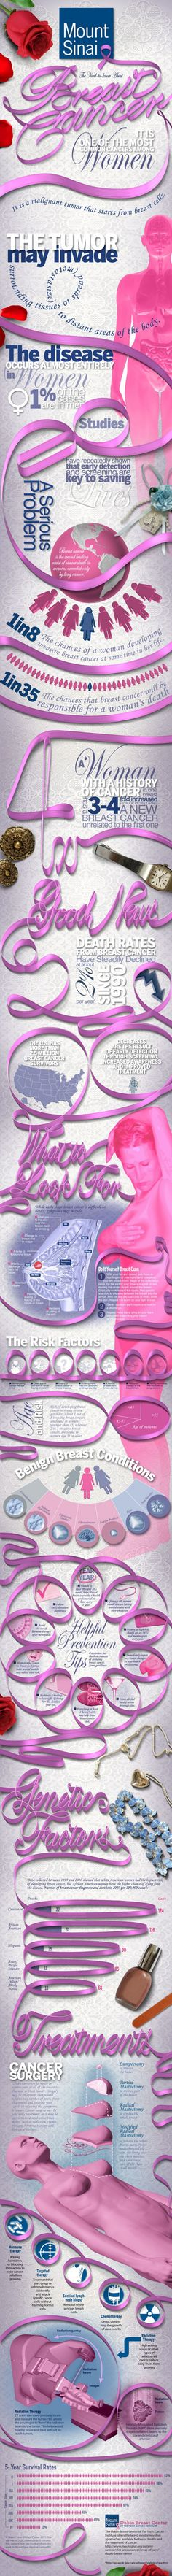 Breast Cancer Facts Need To Know About Breast Cancer